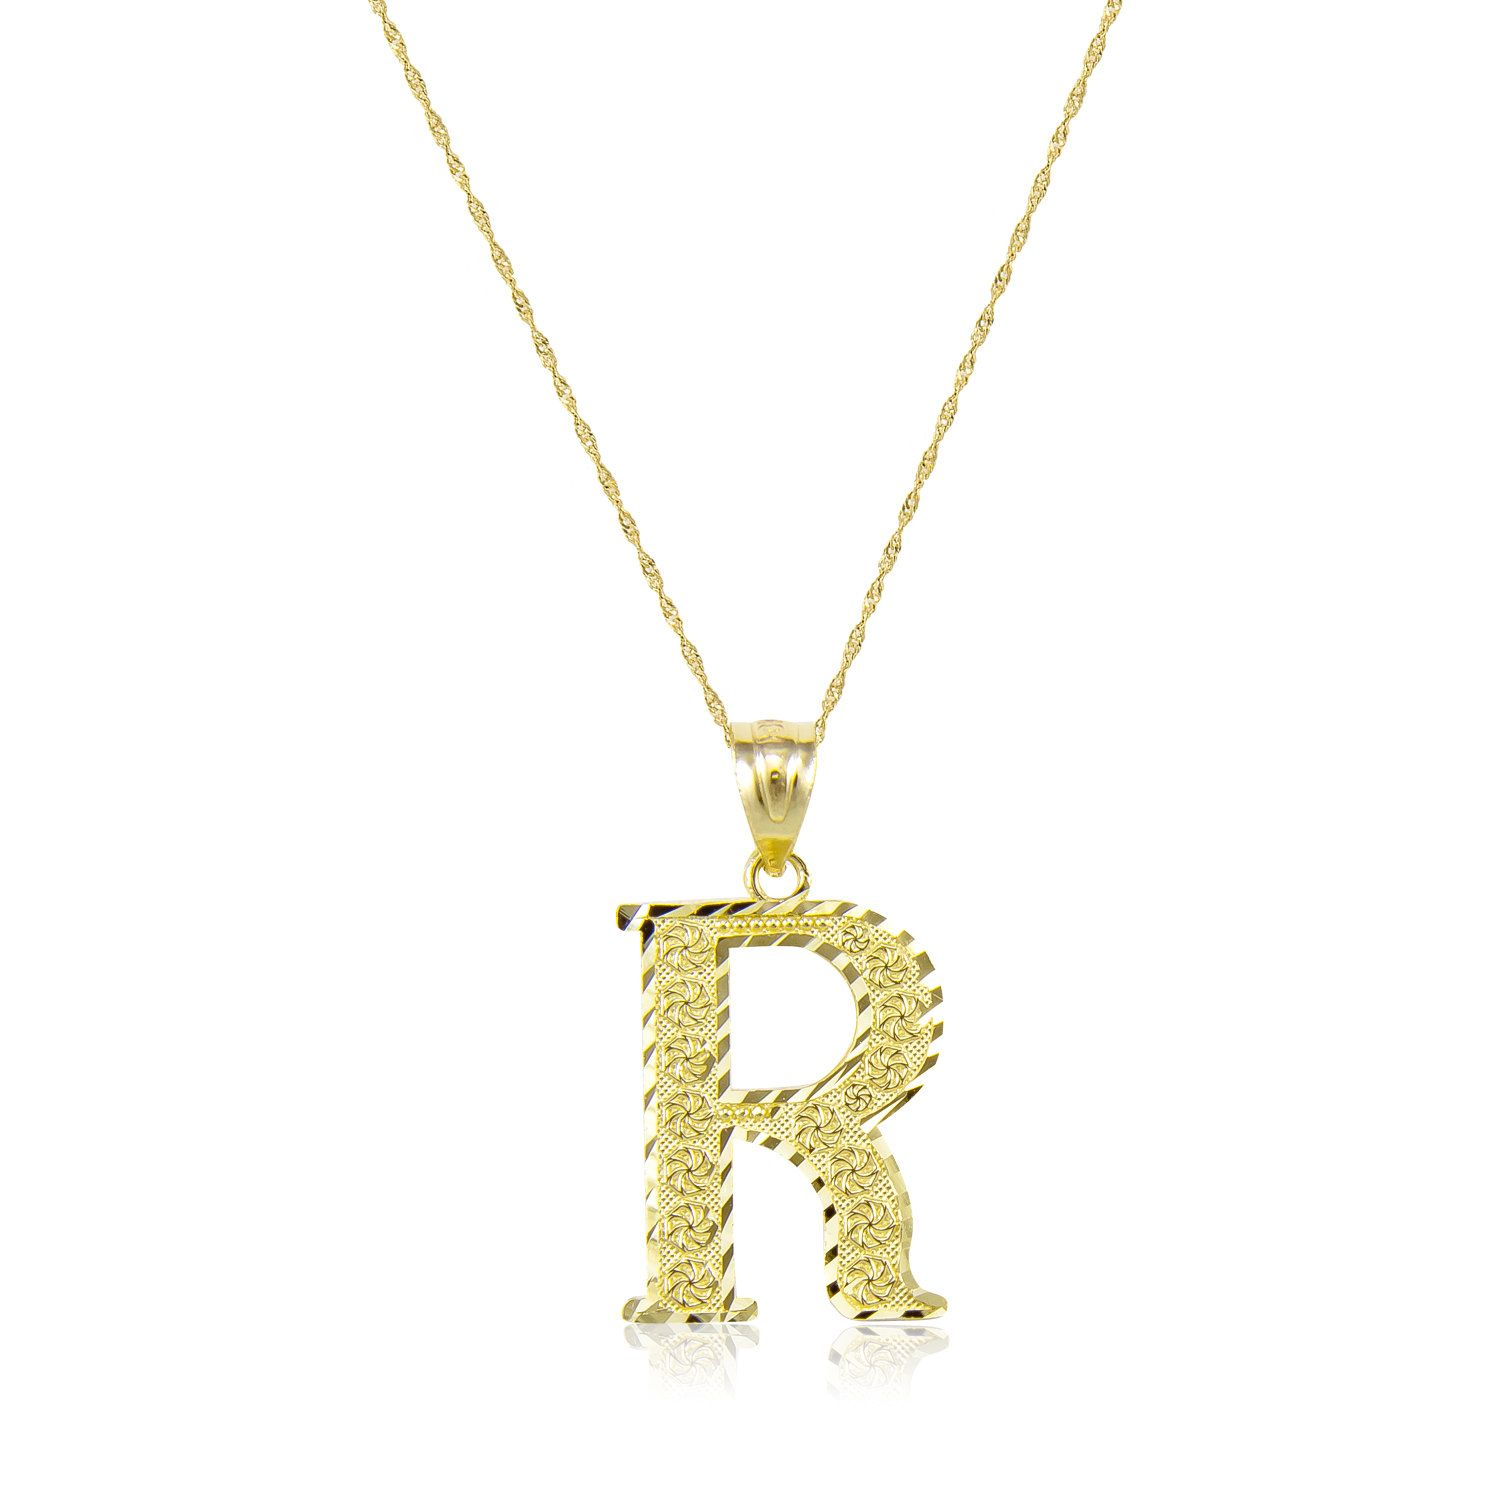 10k Solid Yellow Gold Initial Letter Necklace Pendant Singapore Chain Description Material Genuine 10k Letter Pendants Gold Initial Yellow Gold Pendants